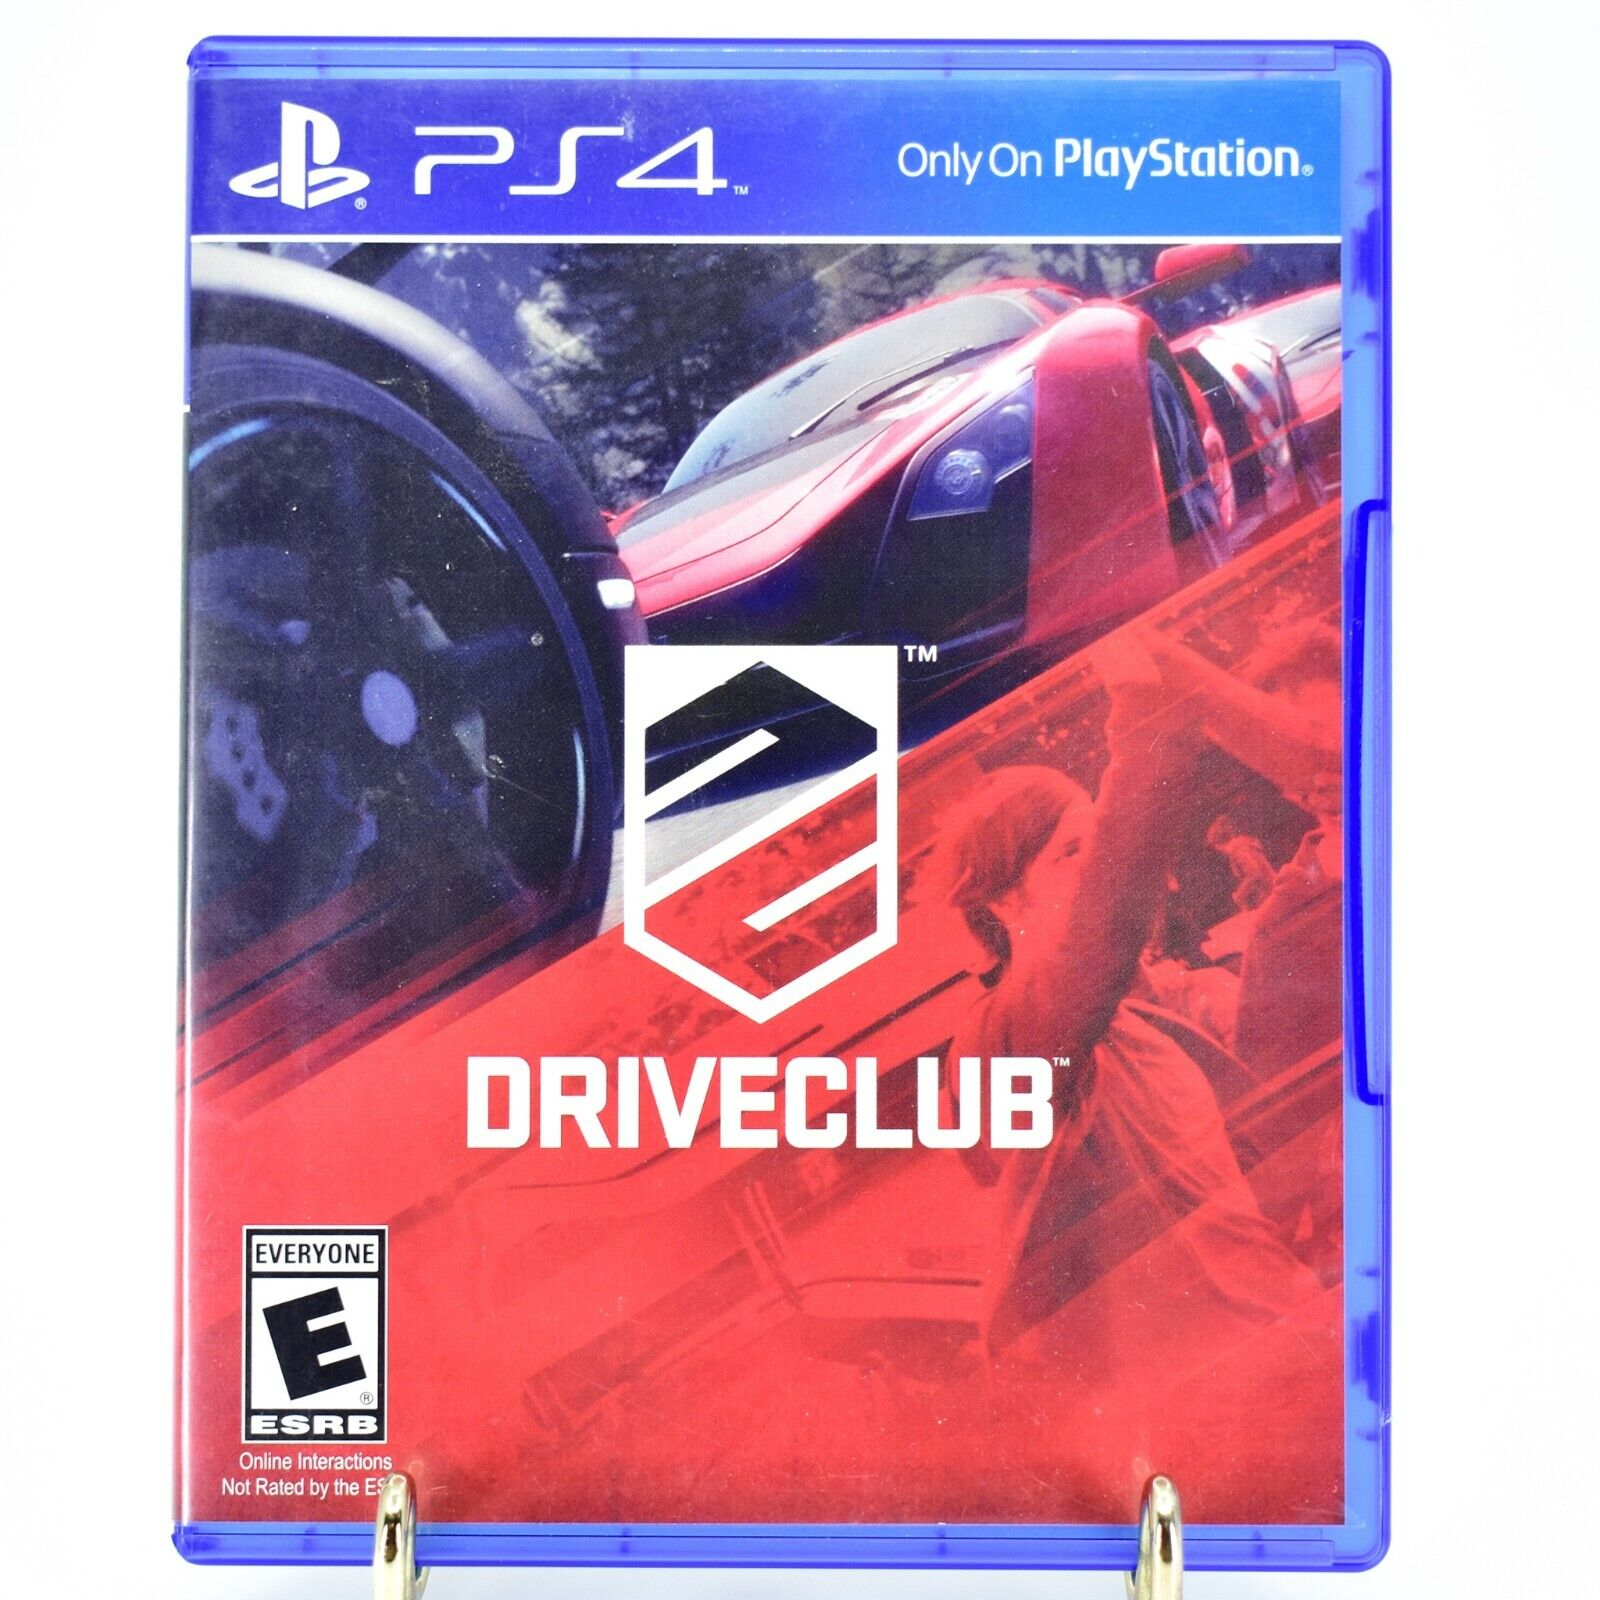 Driveclub Playstation 4 PS4 Racing Video Game